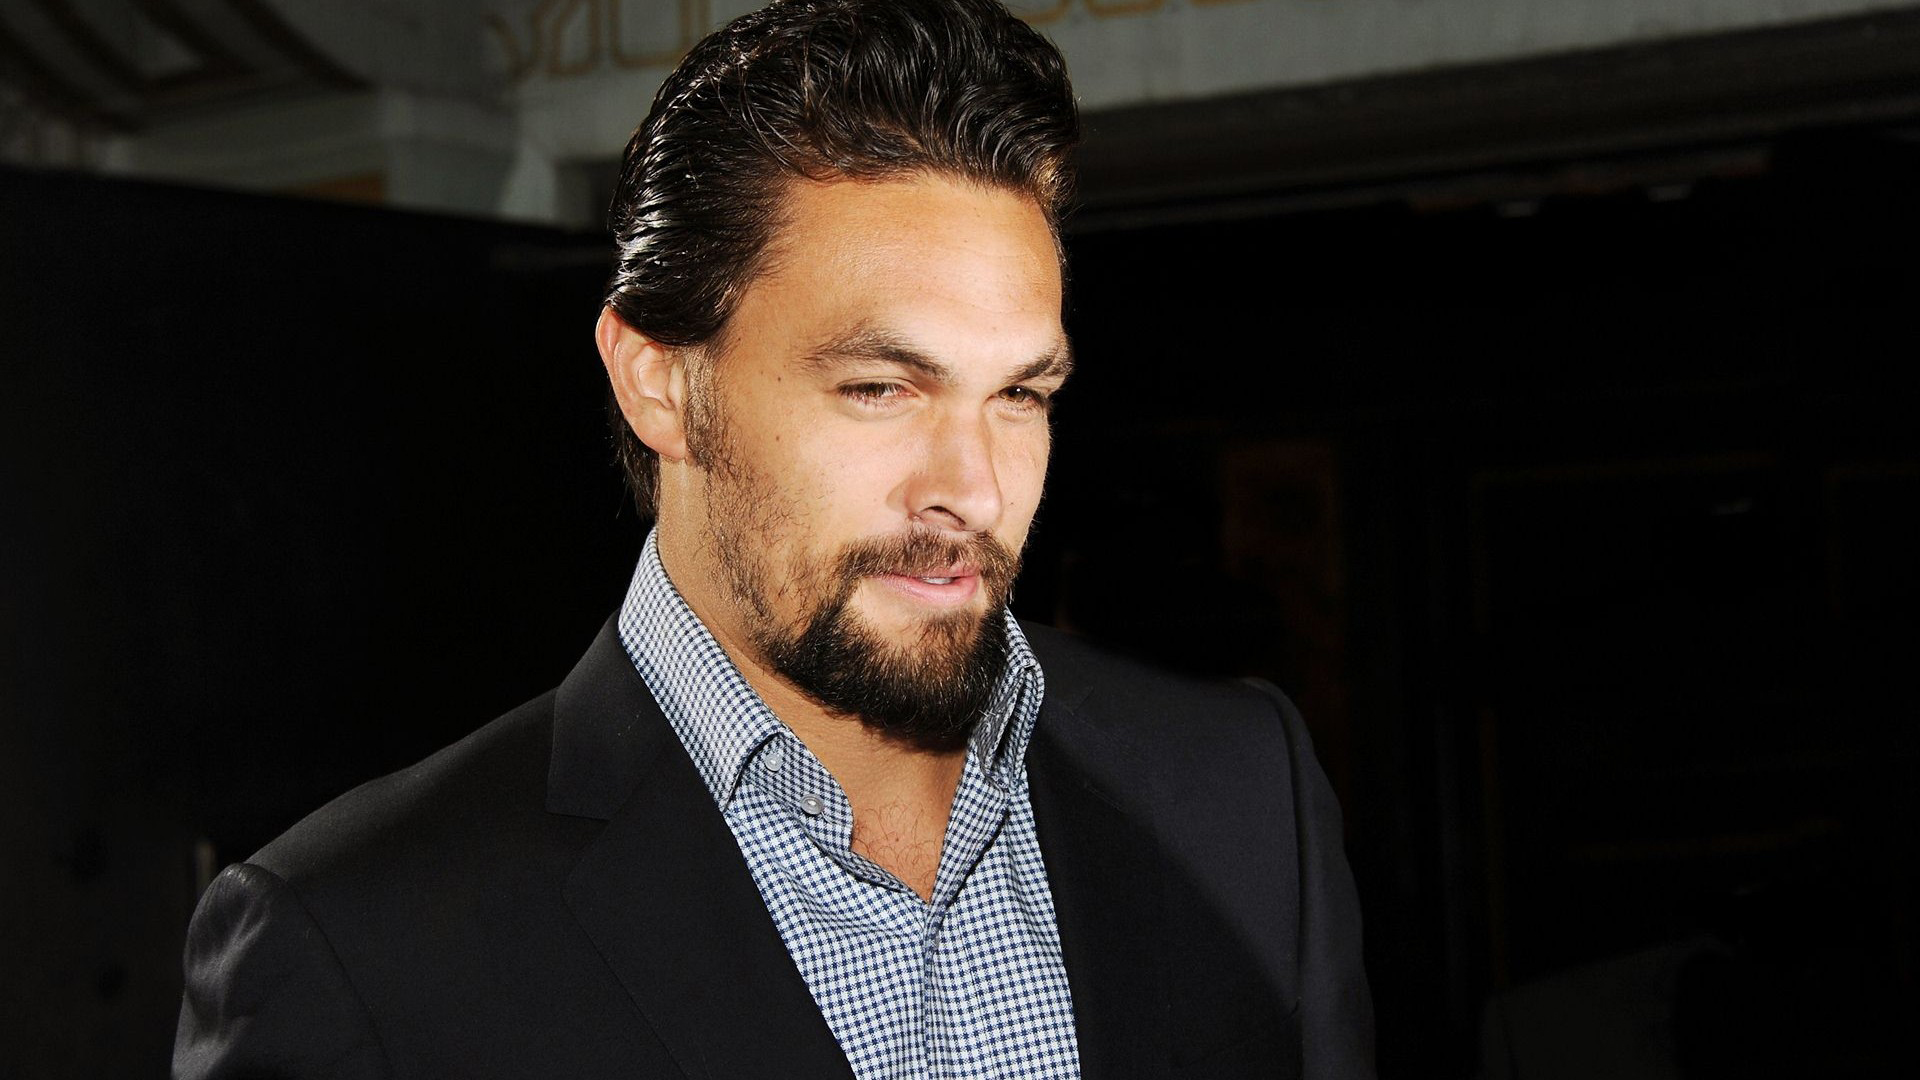 HD Jason Momoa Wallpapers HdCoolWallpapersCom 1920x1080